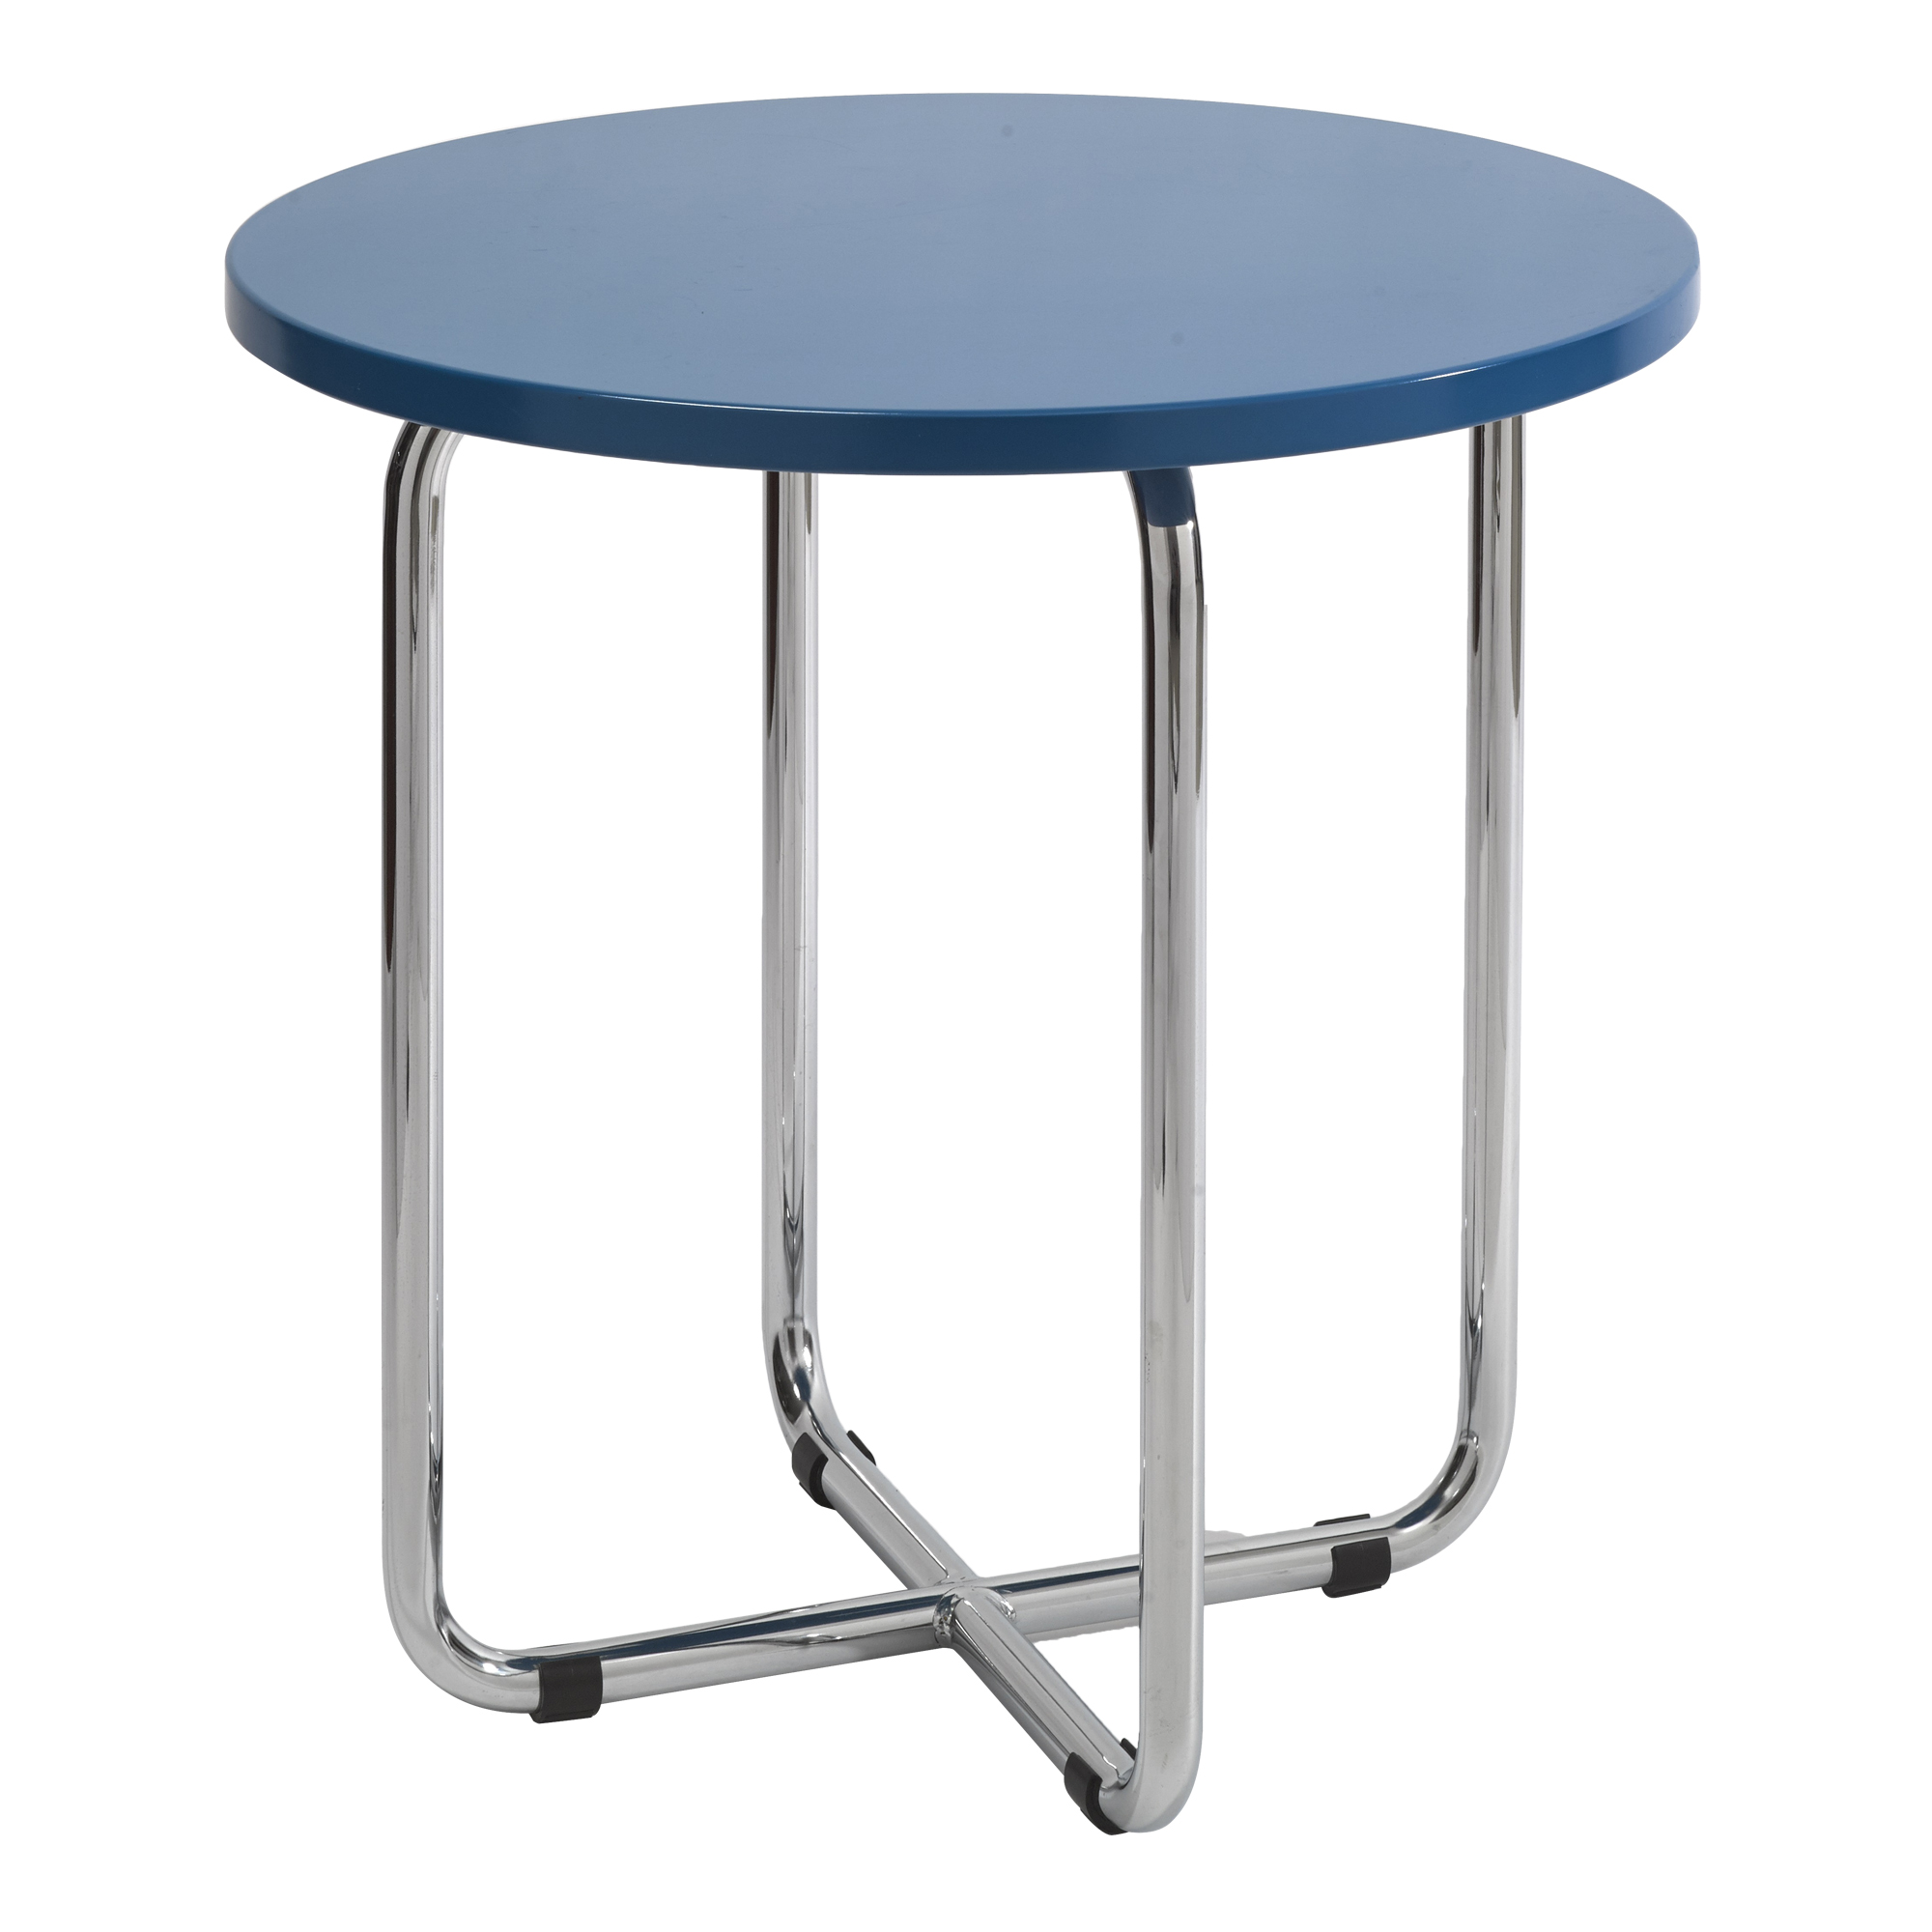 table_fonctionnaliste_chrome_table_ronde_design_tcheque_slezakovy_zavody_slavia_vintage